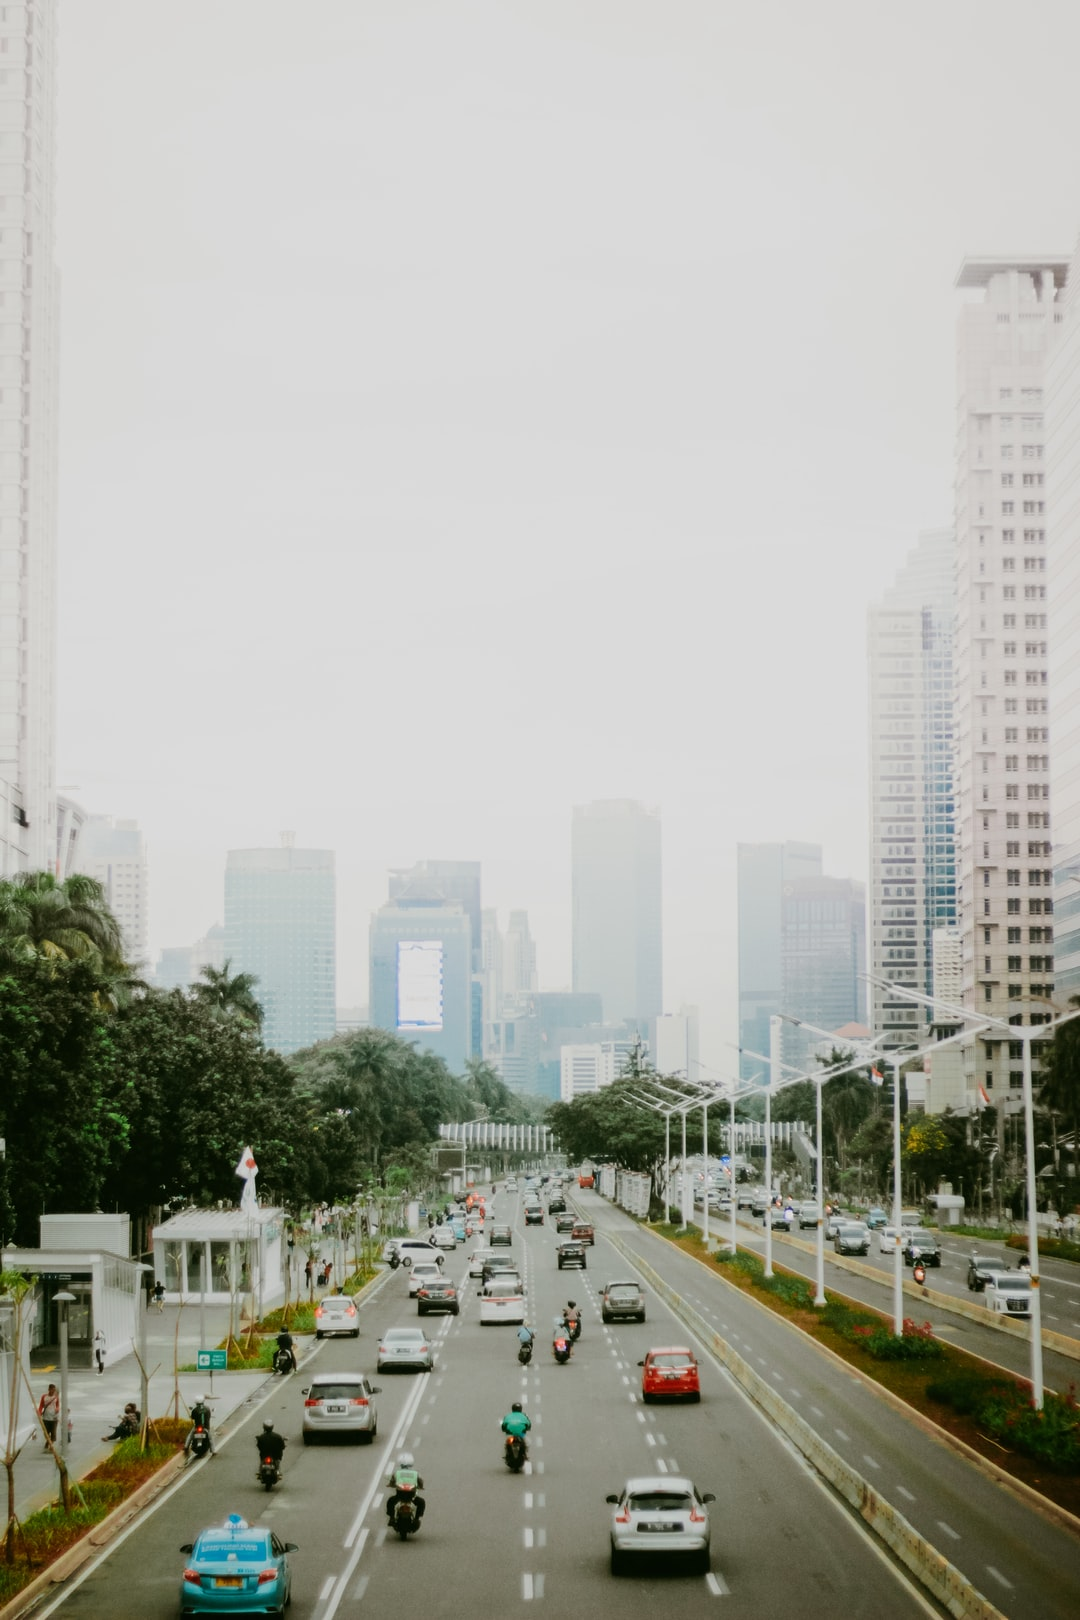 Indonesia is filled with the most iconic skyscrapers, but for me, Jakarta takes the top spot. Did you know that Jakarta is the most polluted city in the world ?